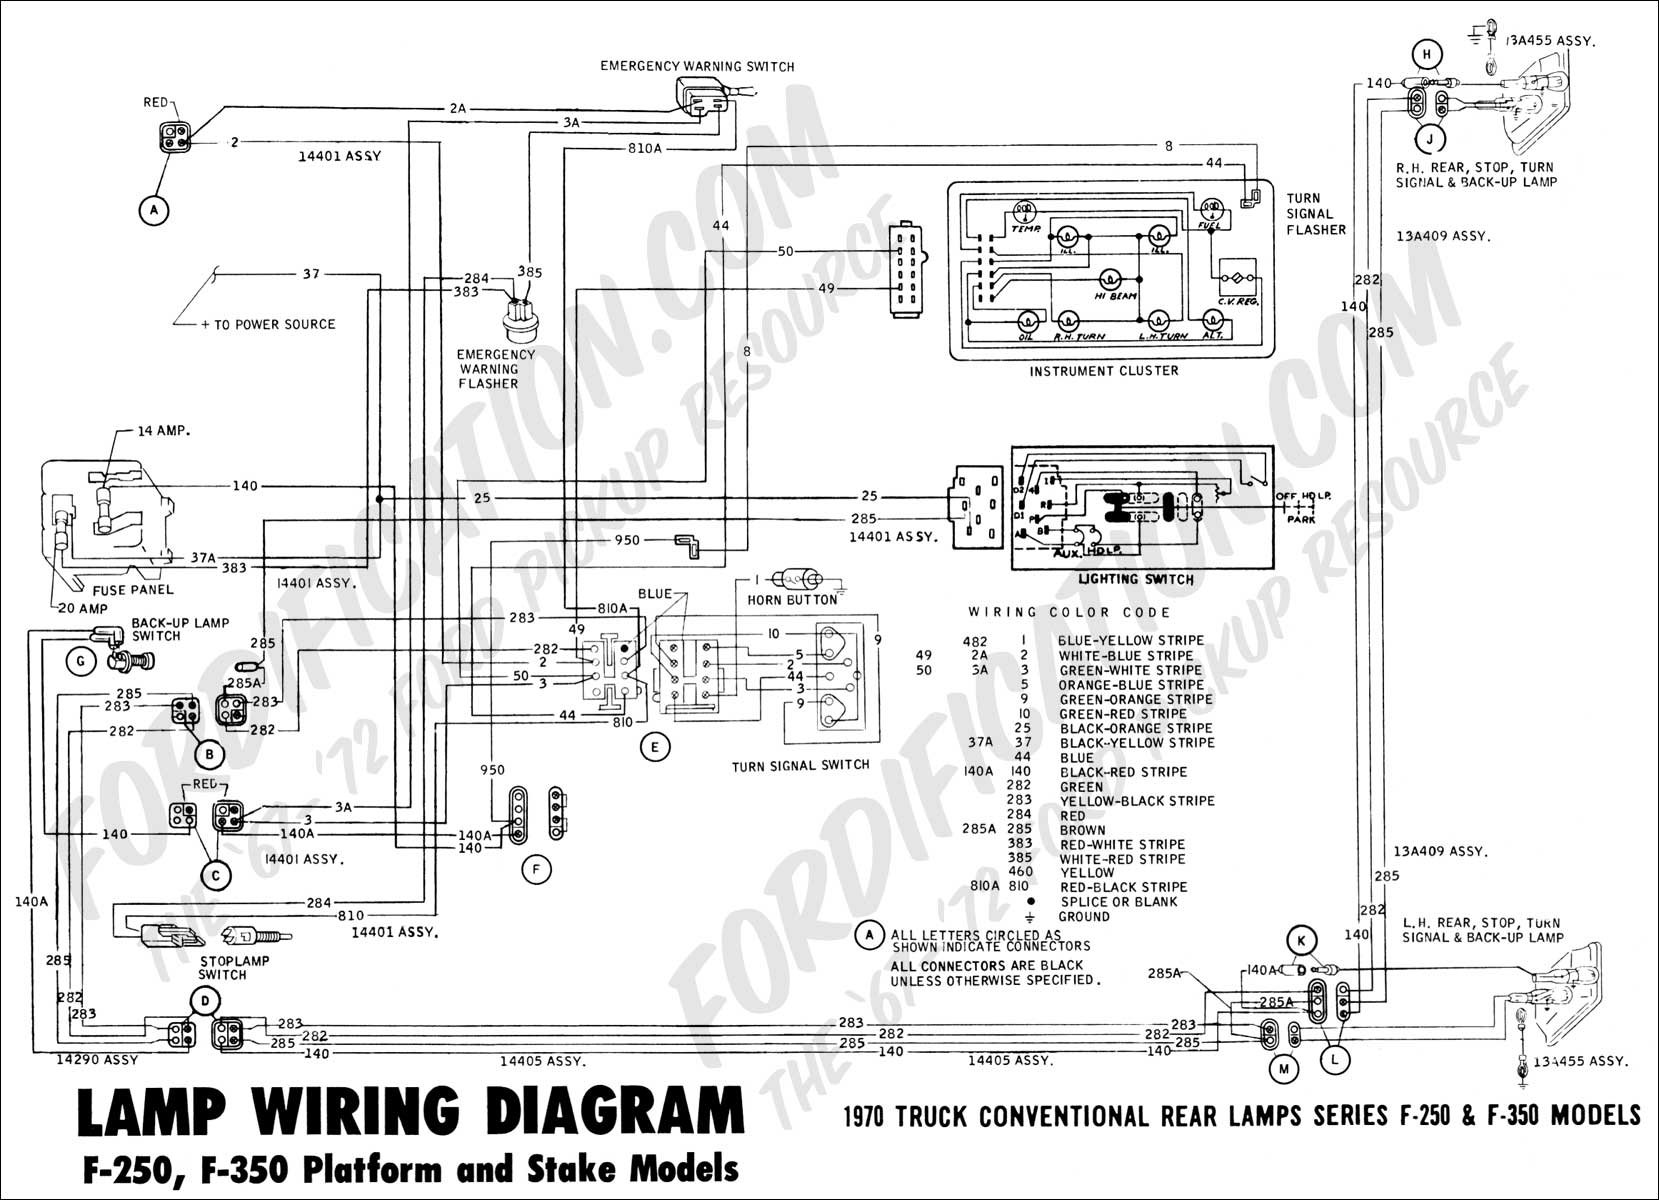 ford truck technical drawings and schematics section h wiring1970 f 250, f 350 platform stake rear lamp wiring 01